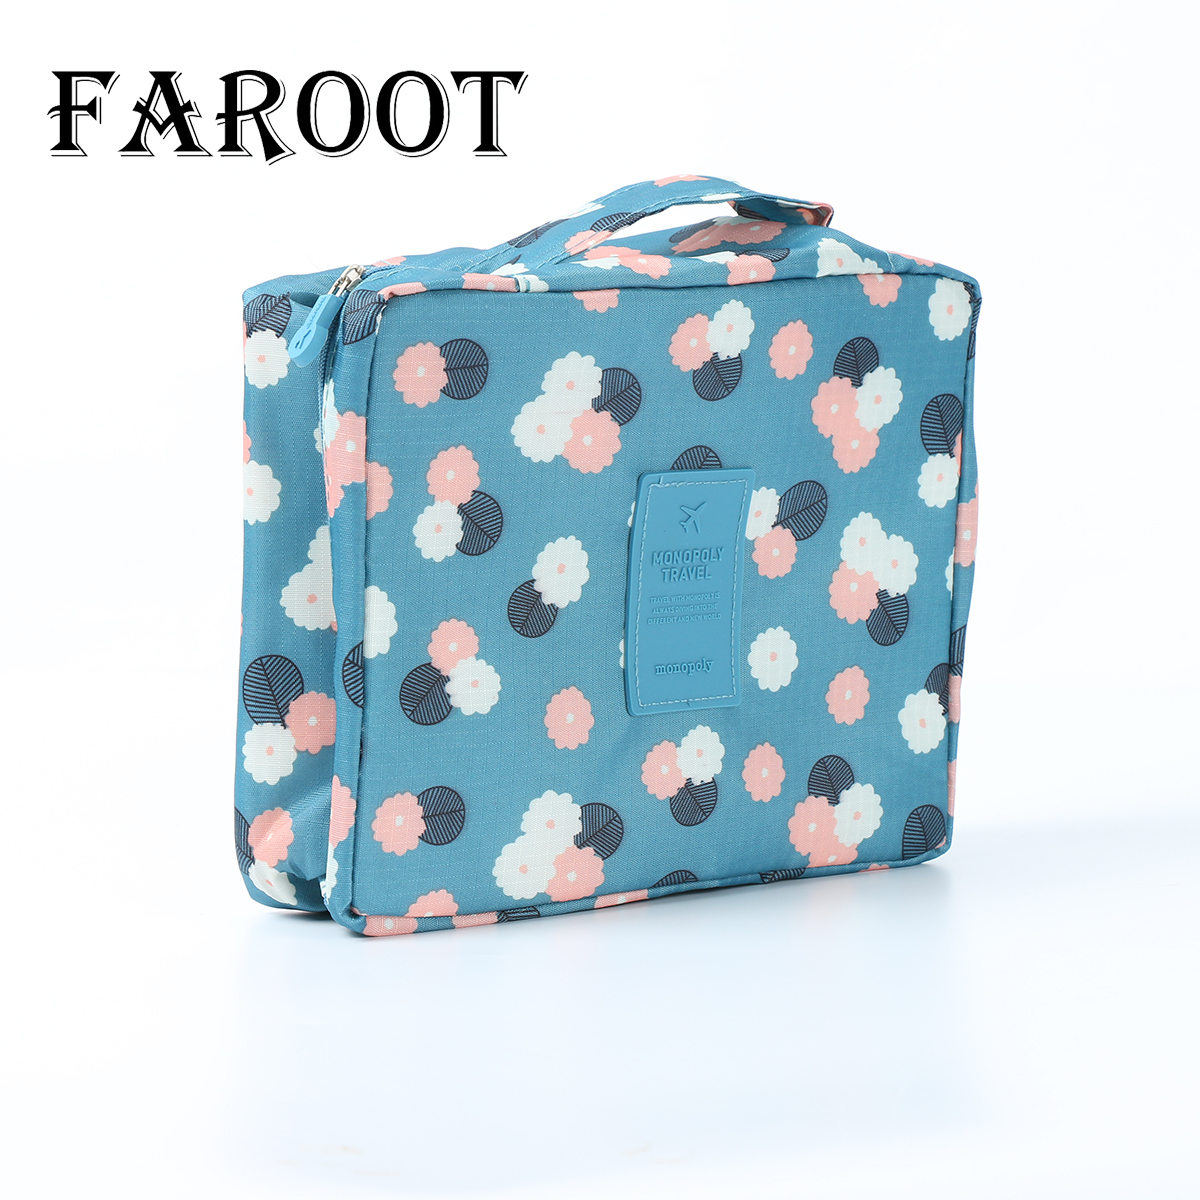 2018 NEW Large Cosmetic Bag Makeup Case Hang Travel Wash Toiletry Organizer Storage Pouch  Laundry Bags